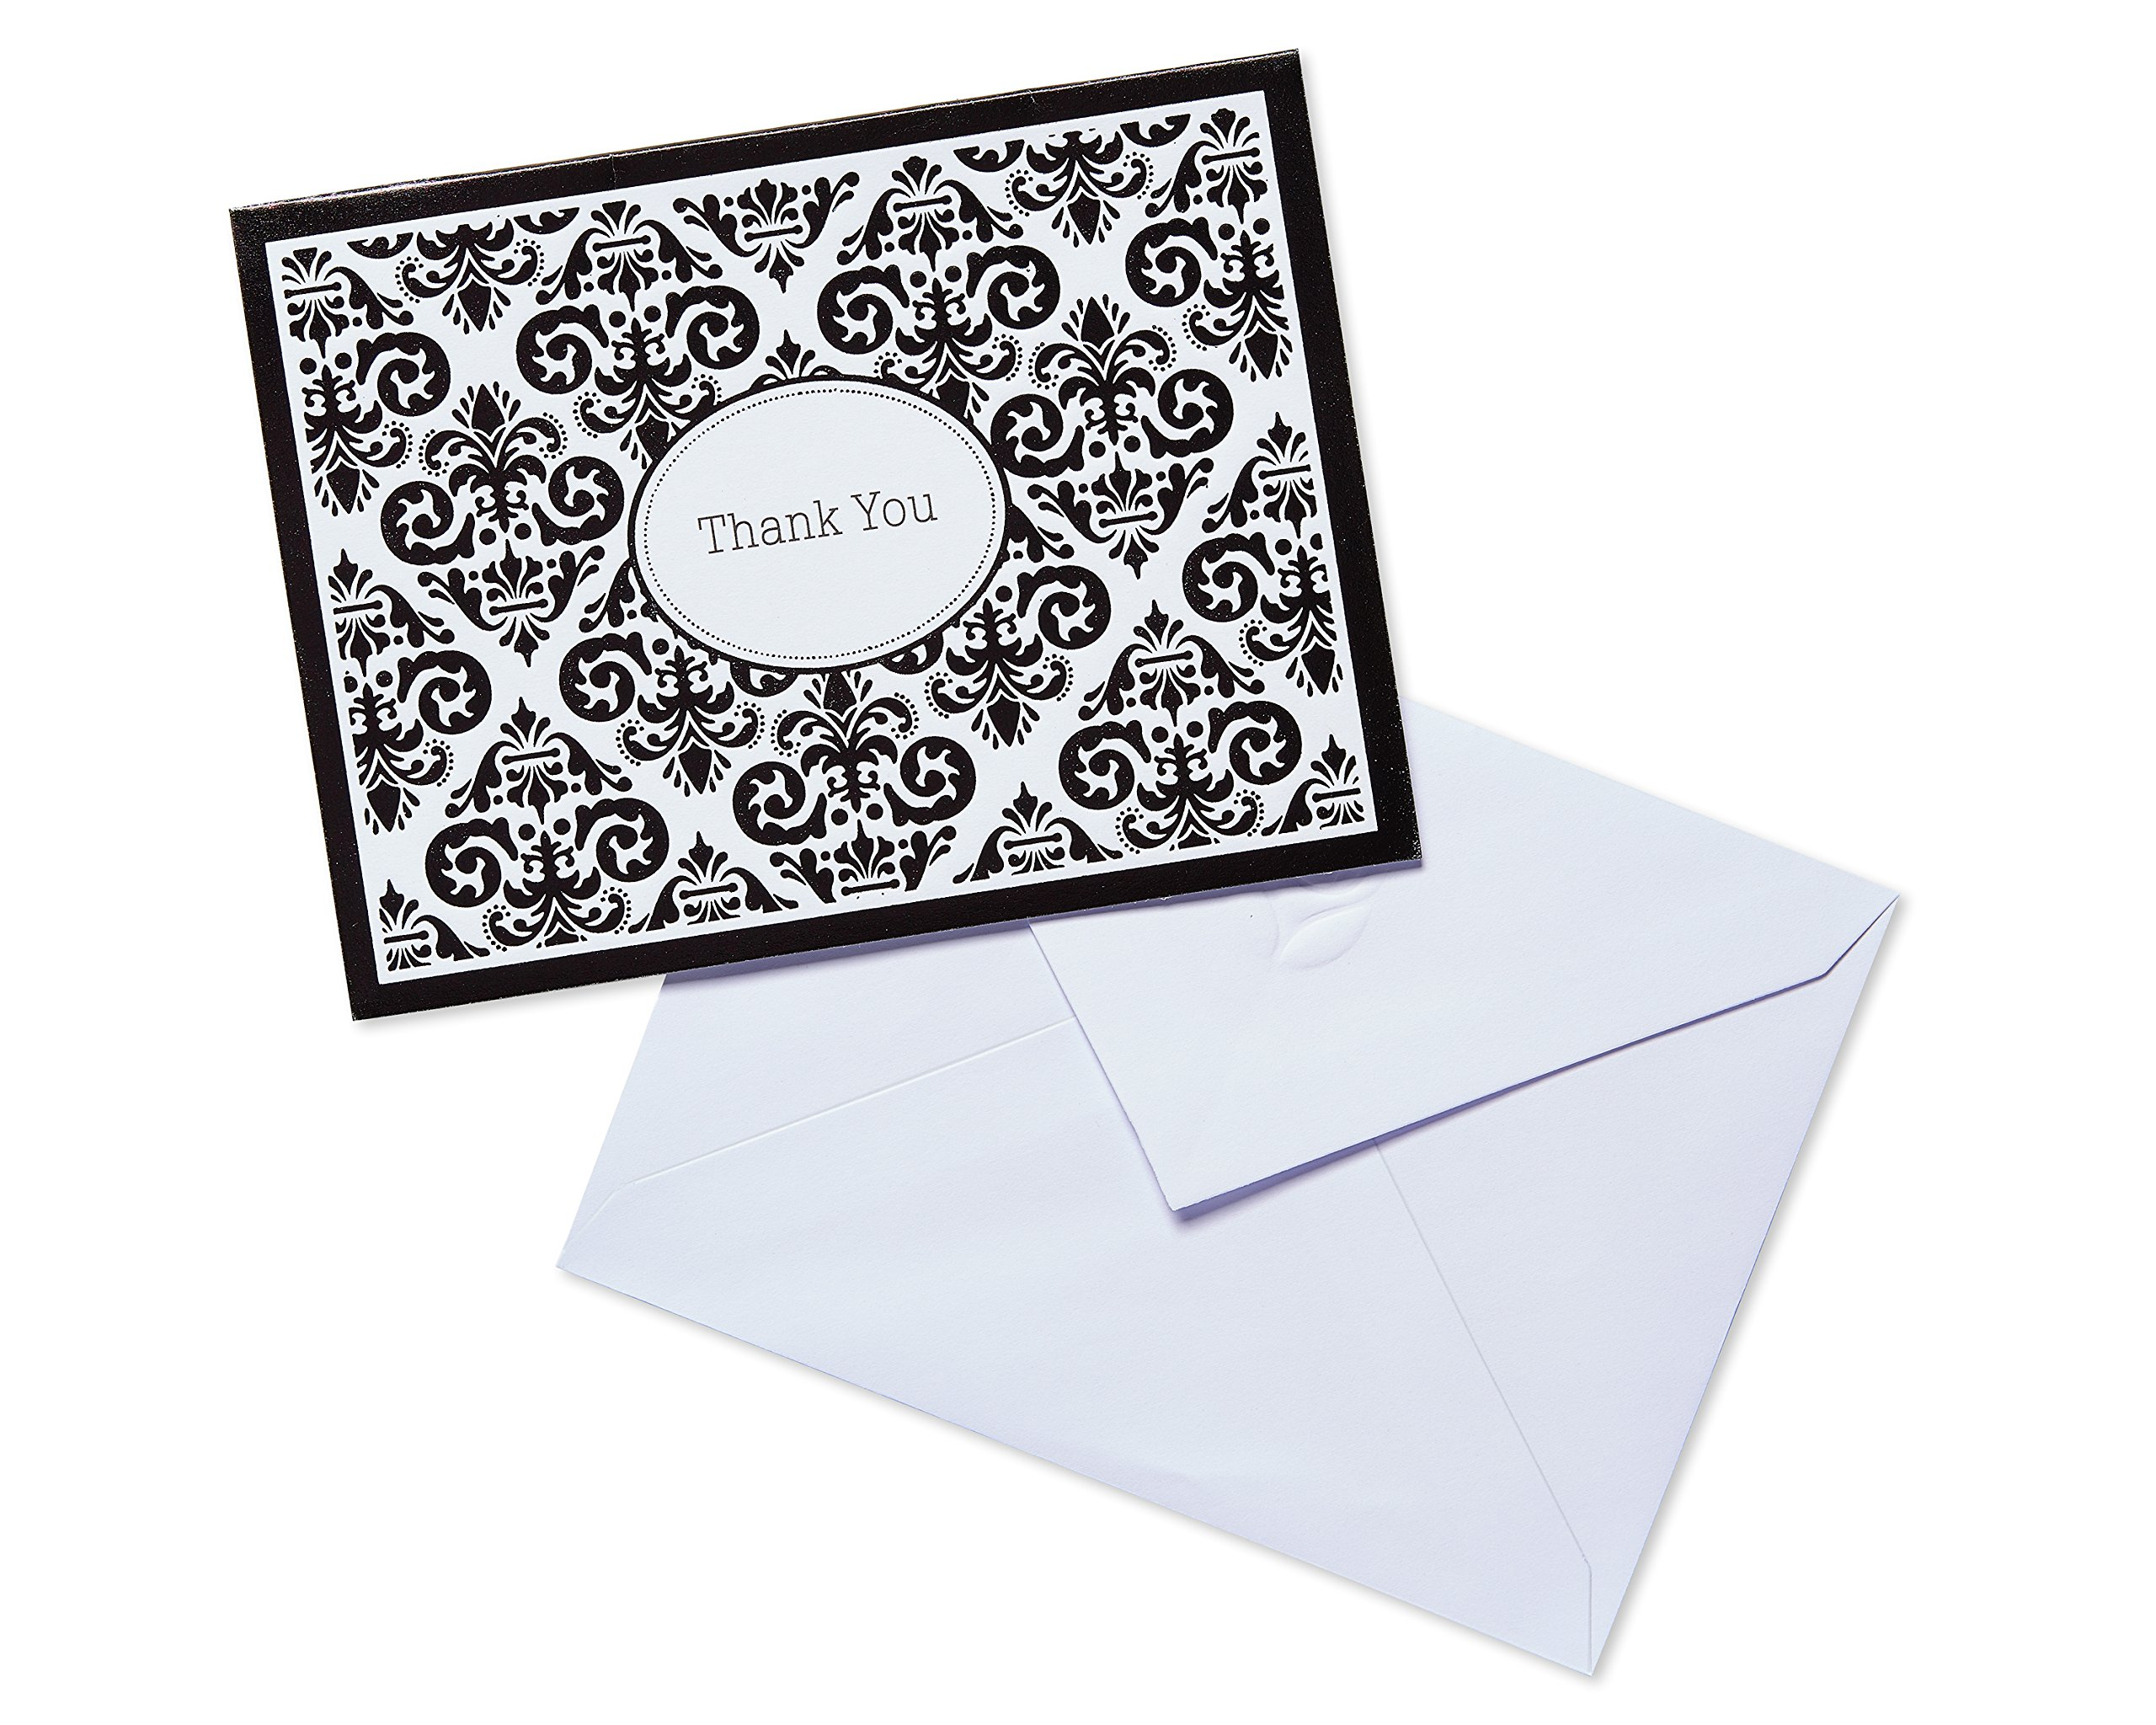 American Greetings 12 Count Damask Thank-You Cards, Black/White